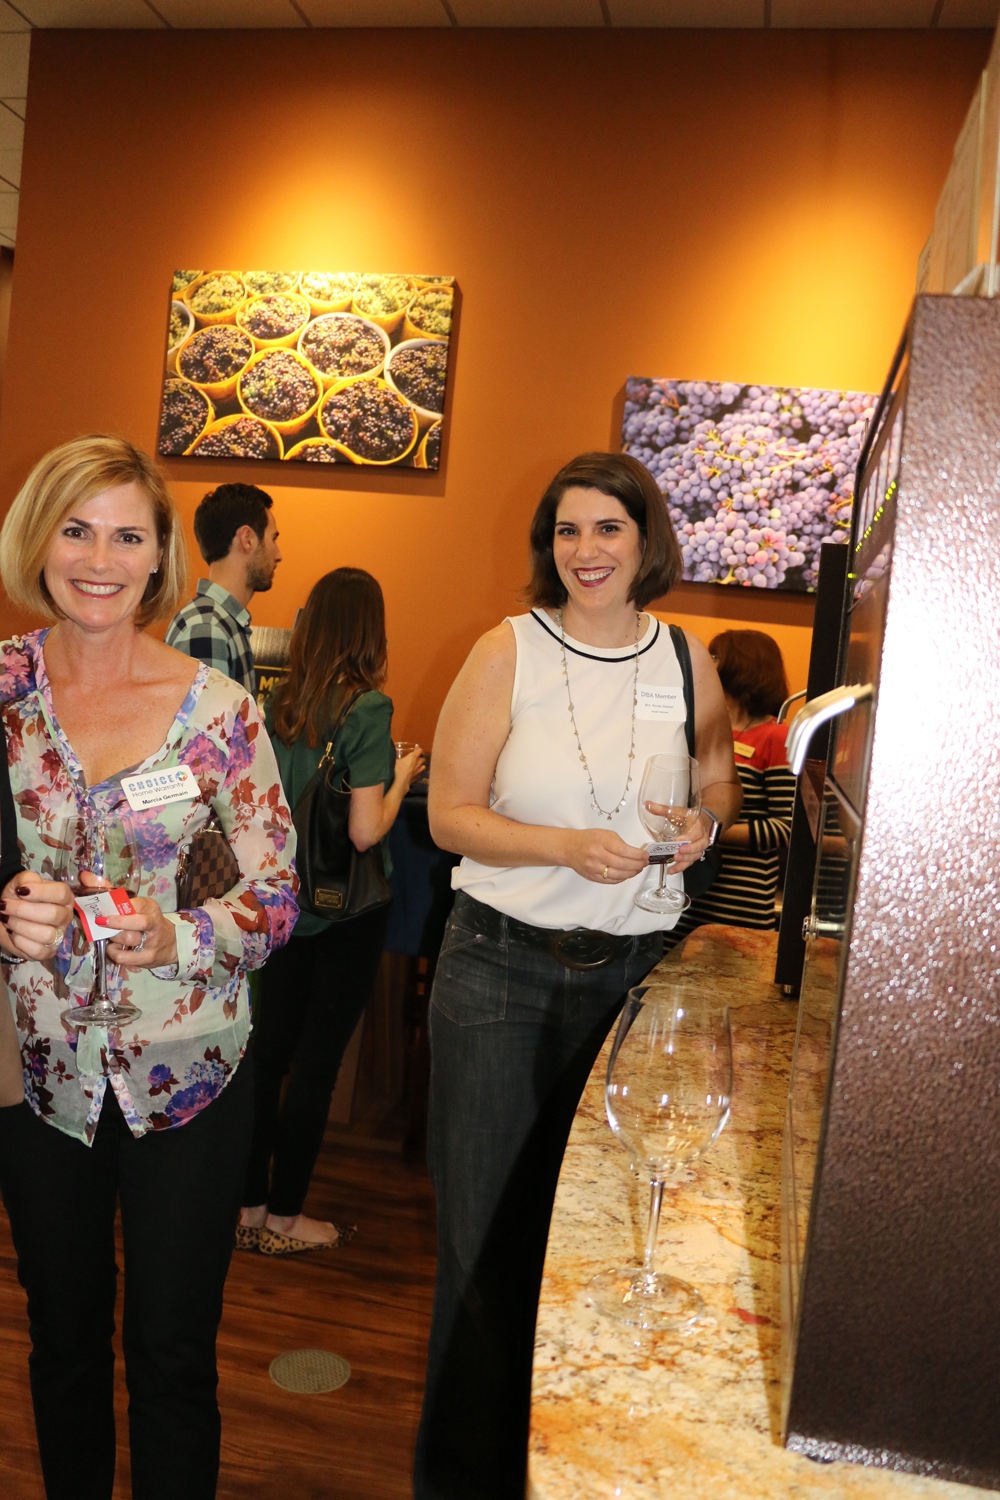 Marcia Germain and Nicole Stewart check out the Bin 526 wine bar selections.